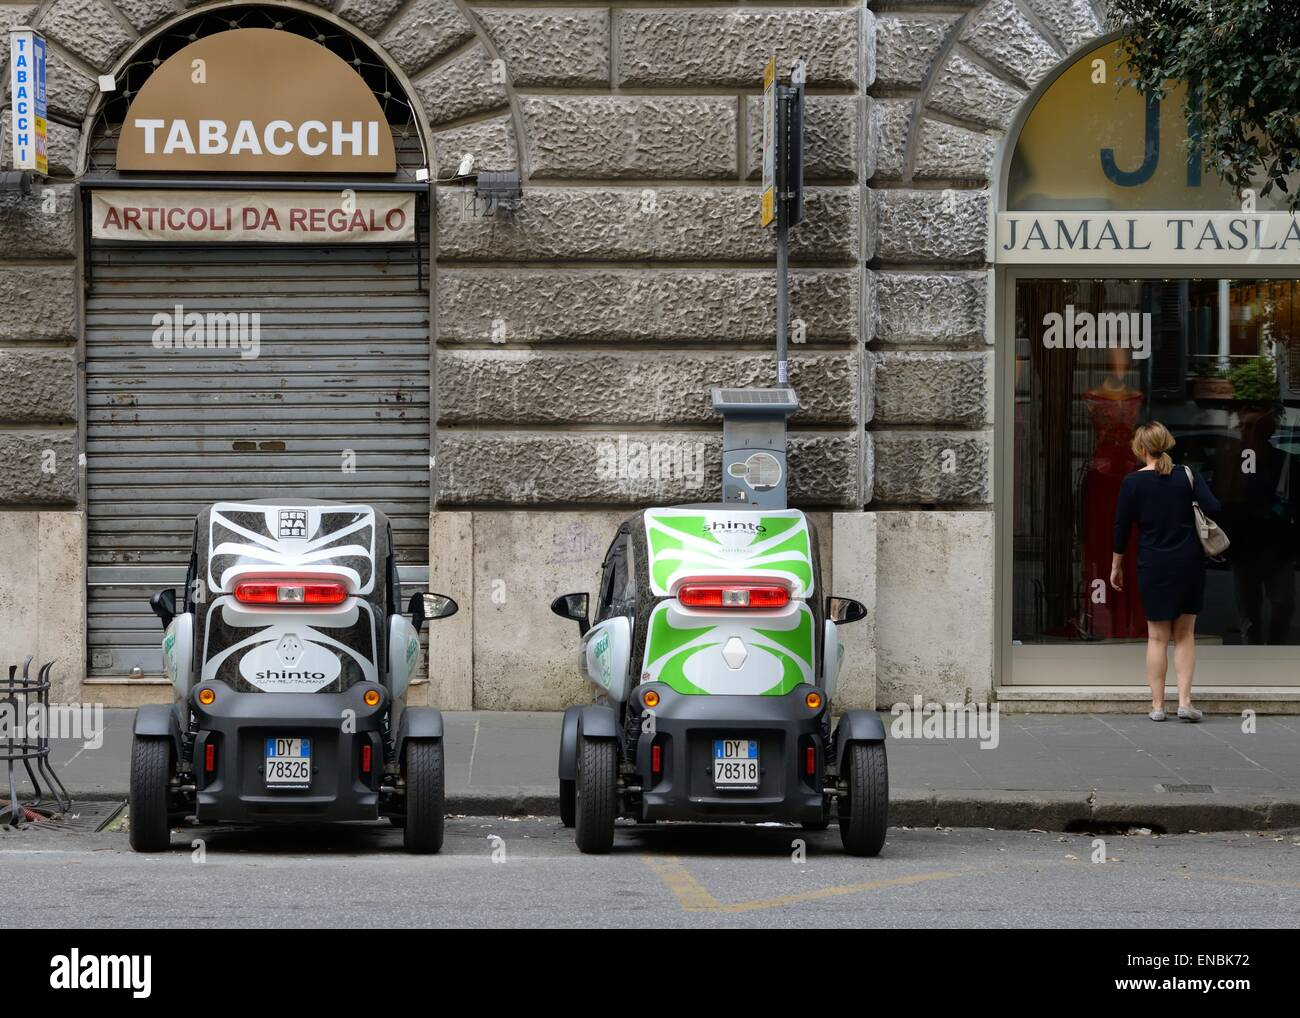 Two Renault Twizy cars parked side by side in Rome, Italy Stock Photo